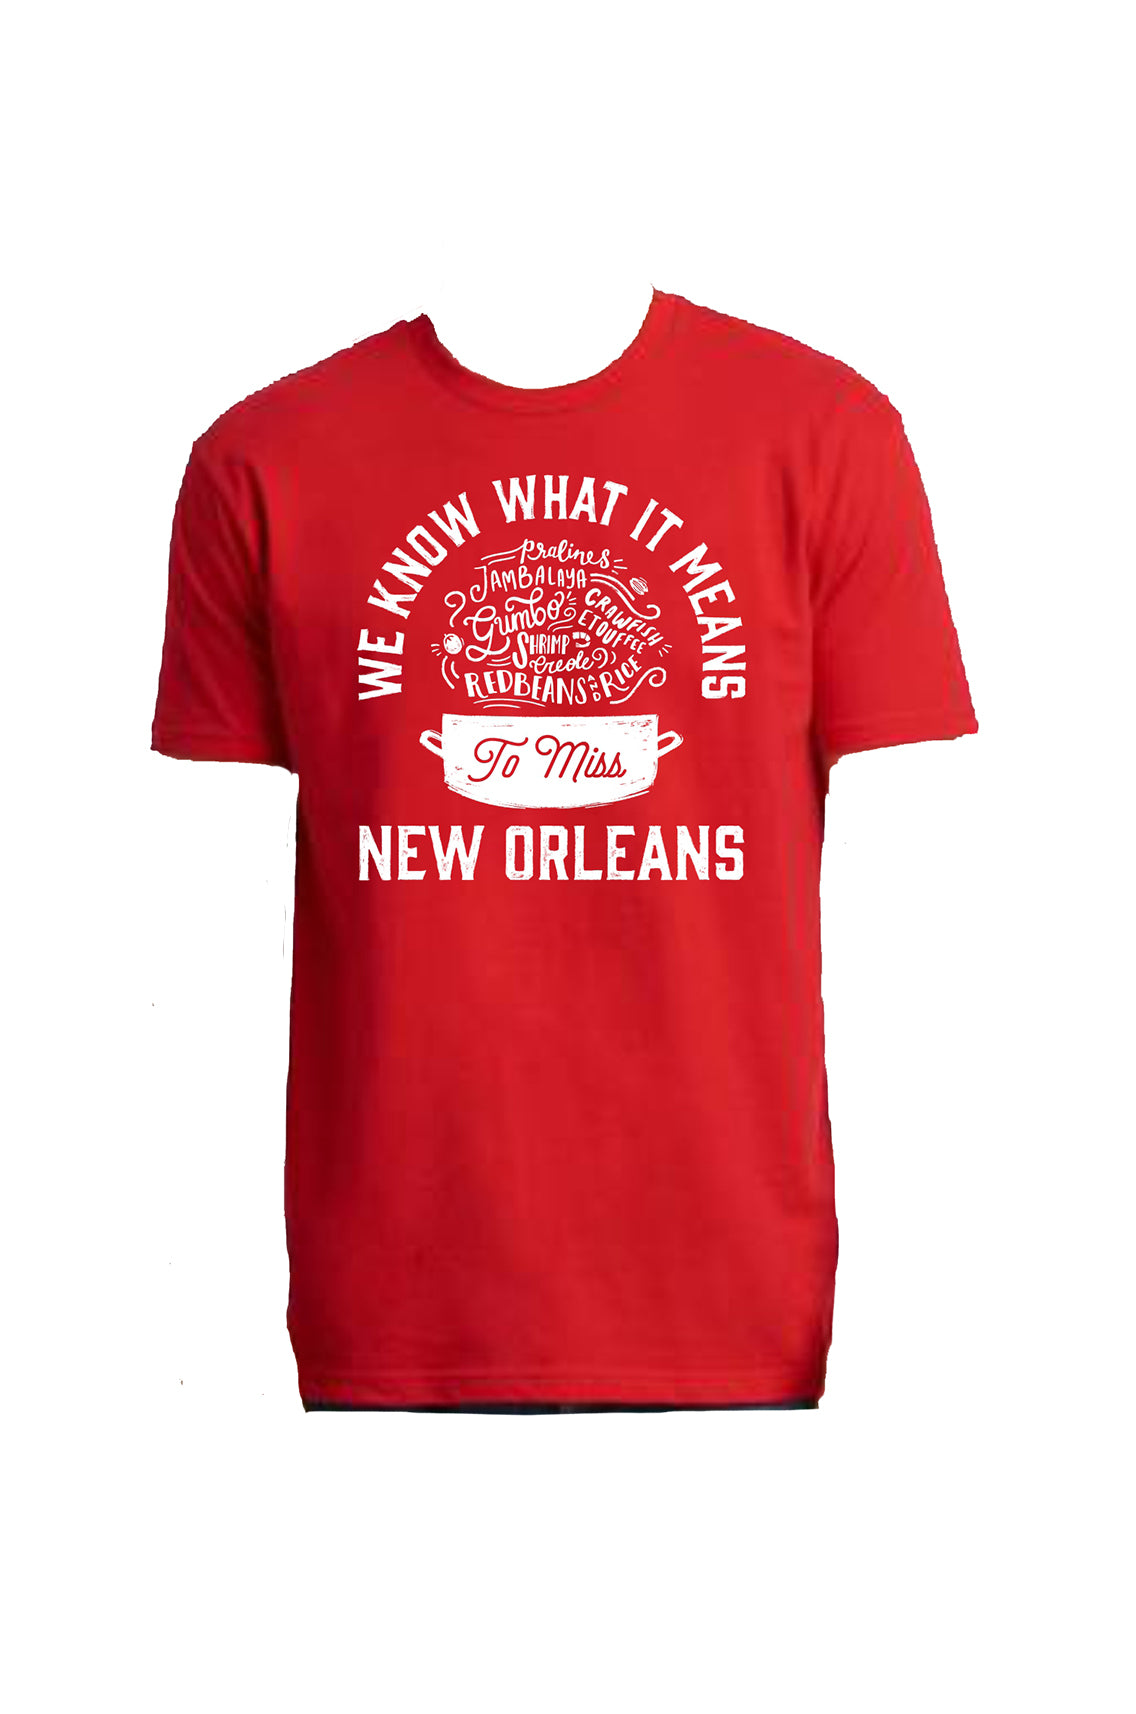 We Know What It Means To Miss New Orleans